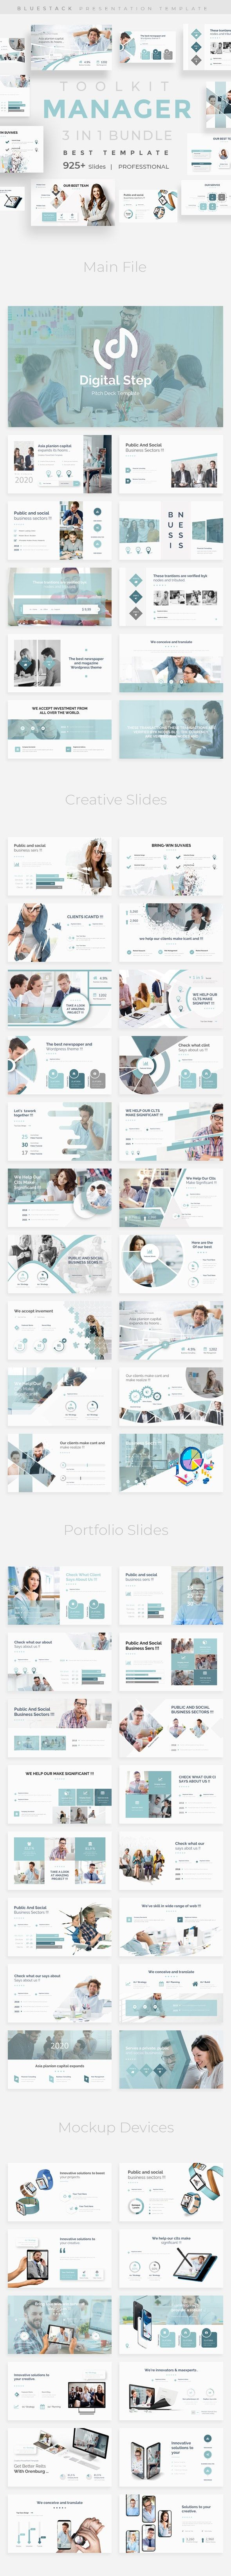 Manager Toolkit 3 in 1 Pitch Deck Bundle PowerPoint Template